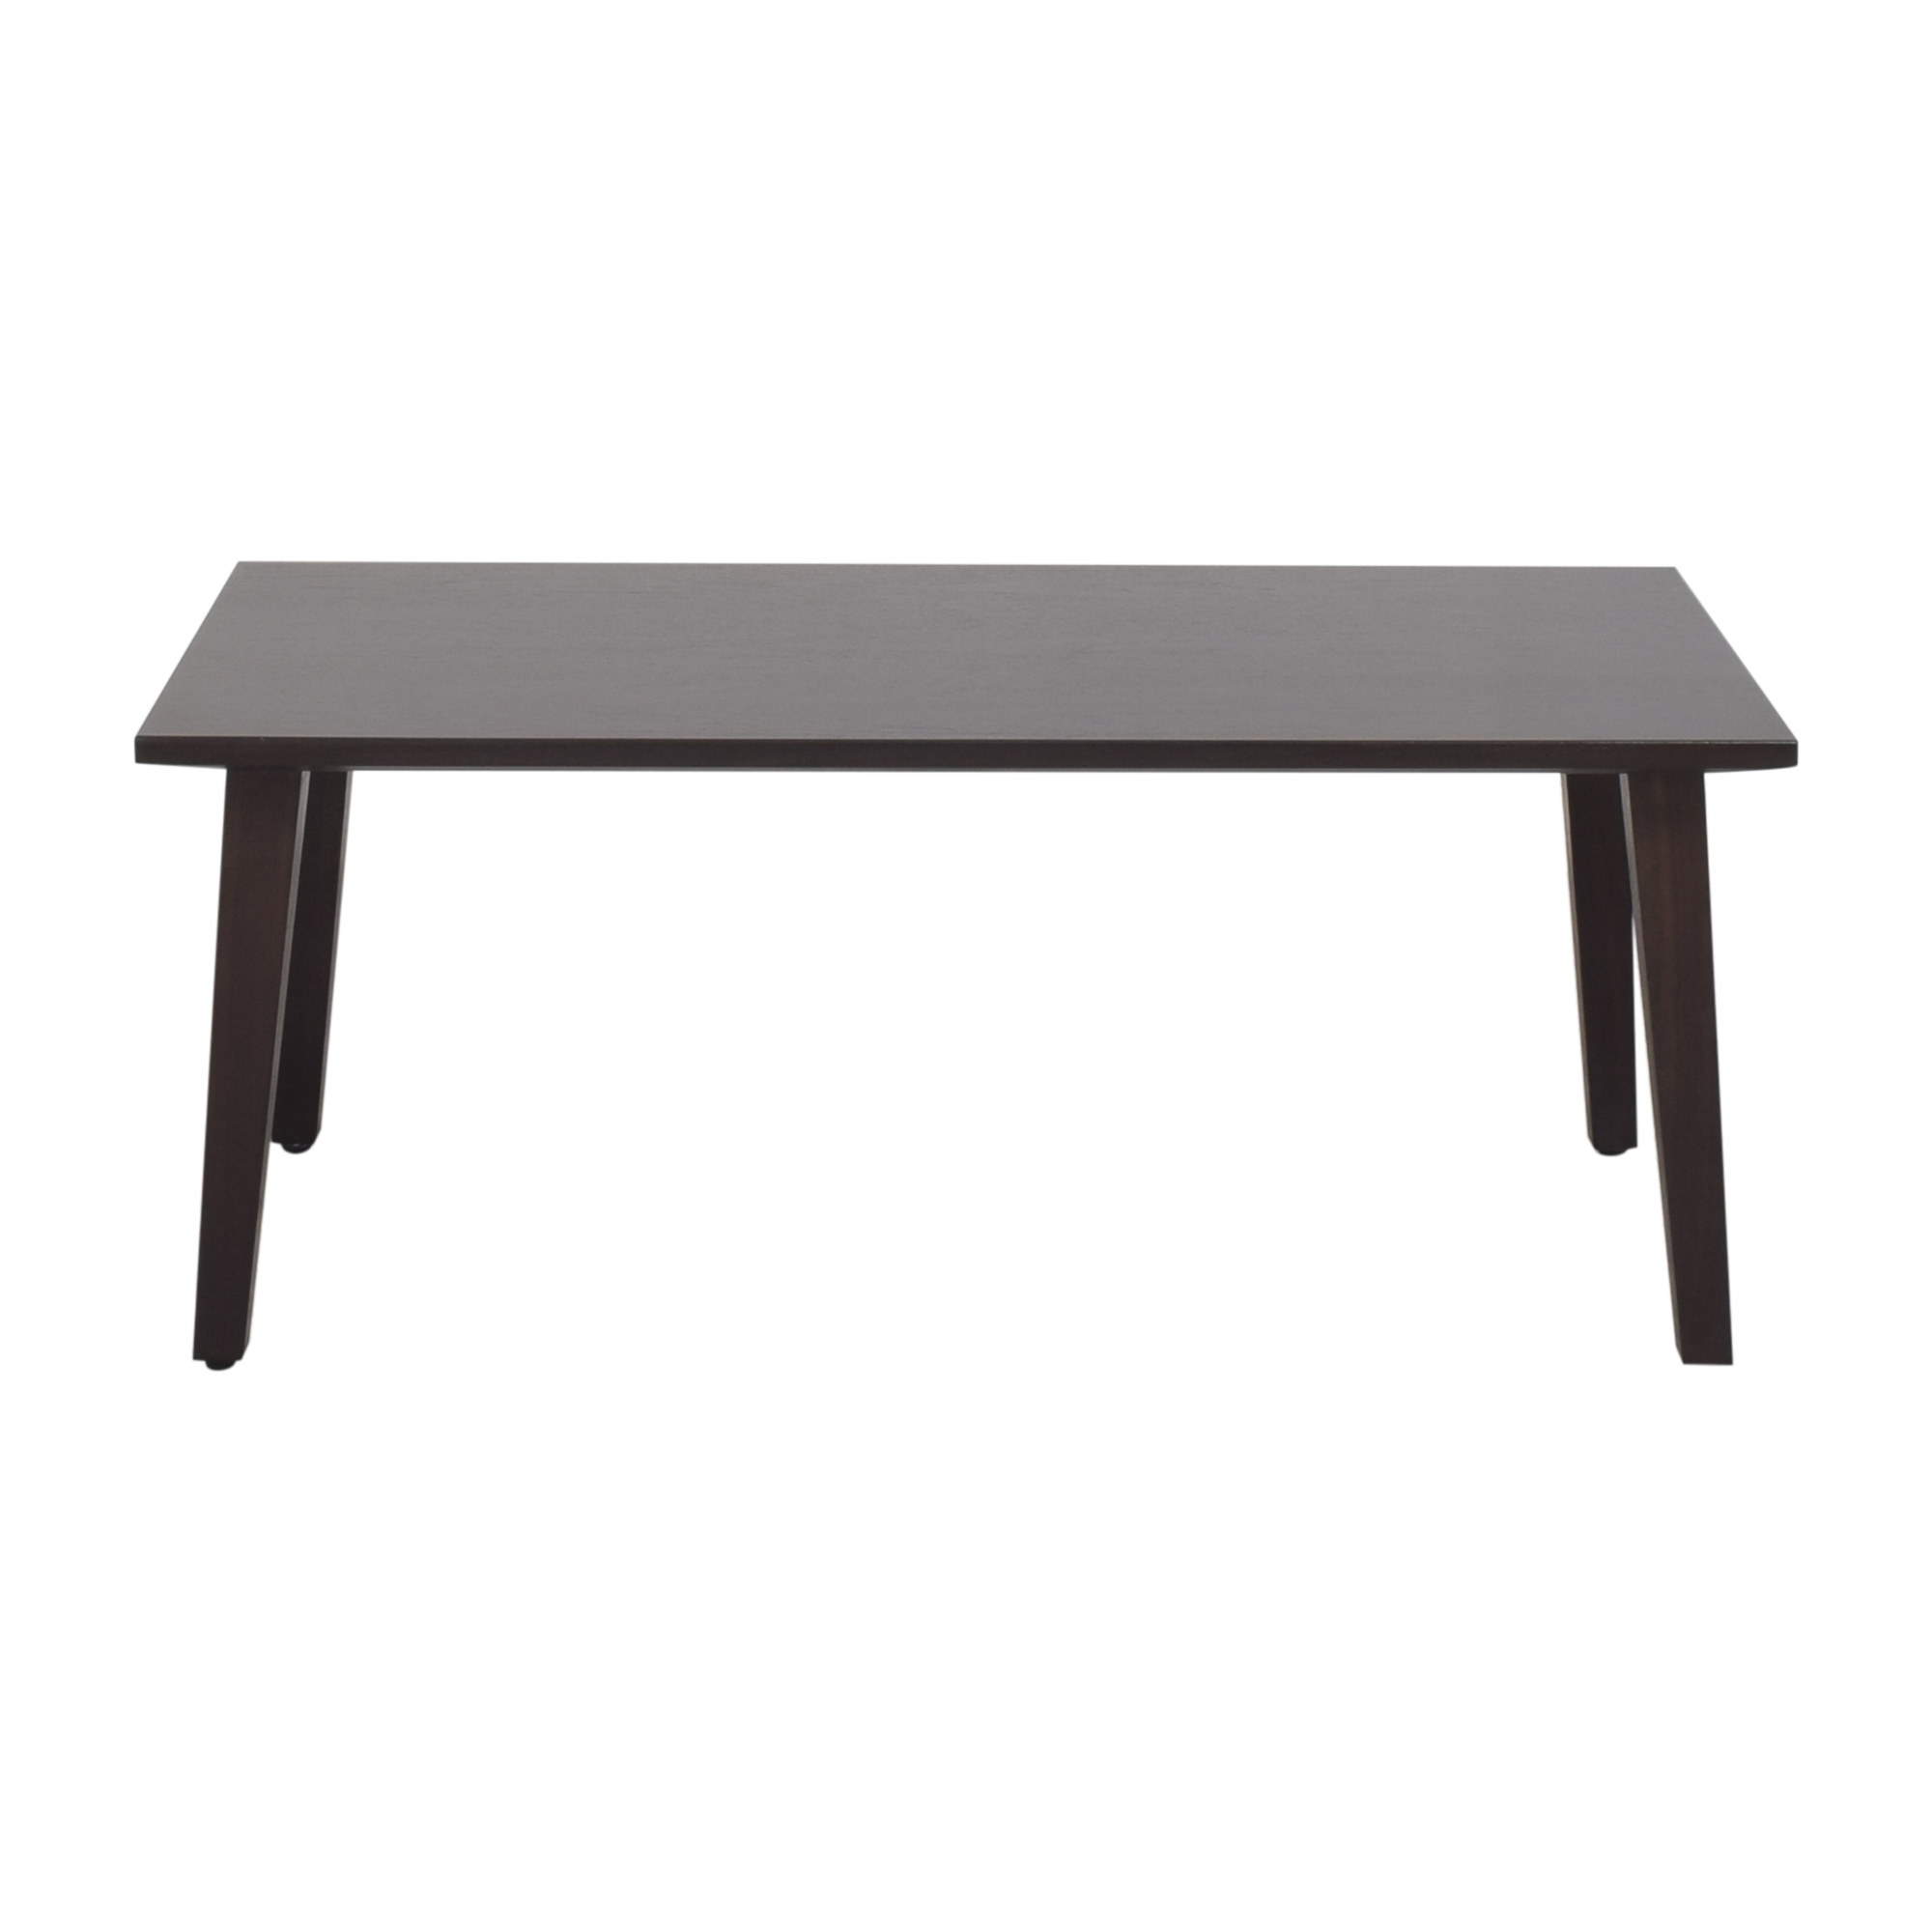 Global Furniture Group Global Furniture Group Corby Veneer Coffee Table price